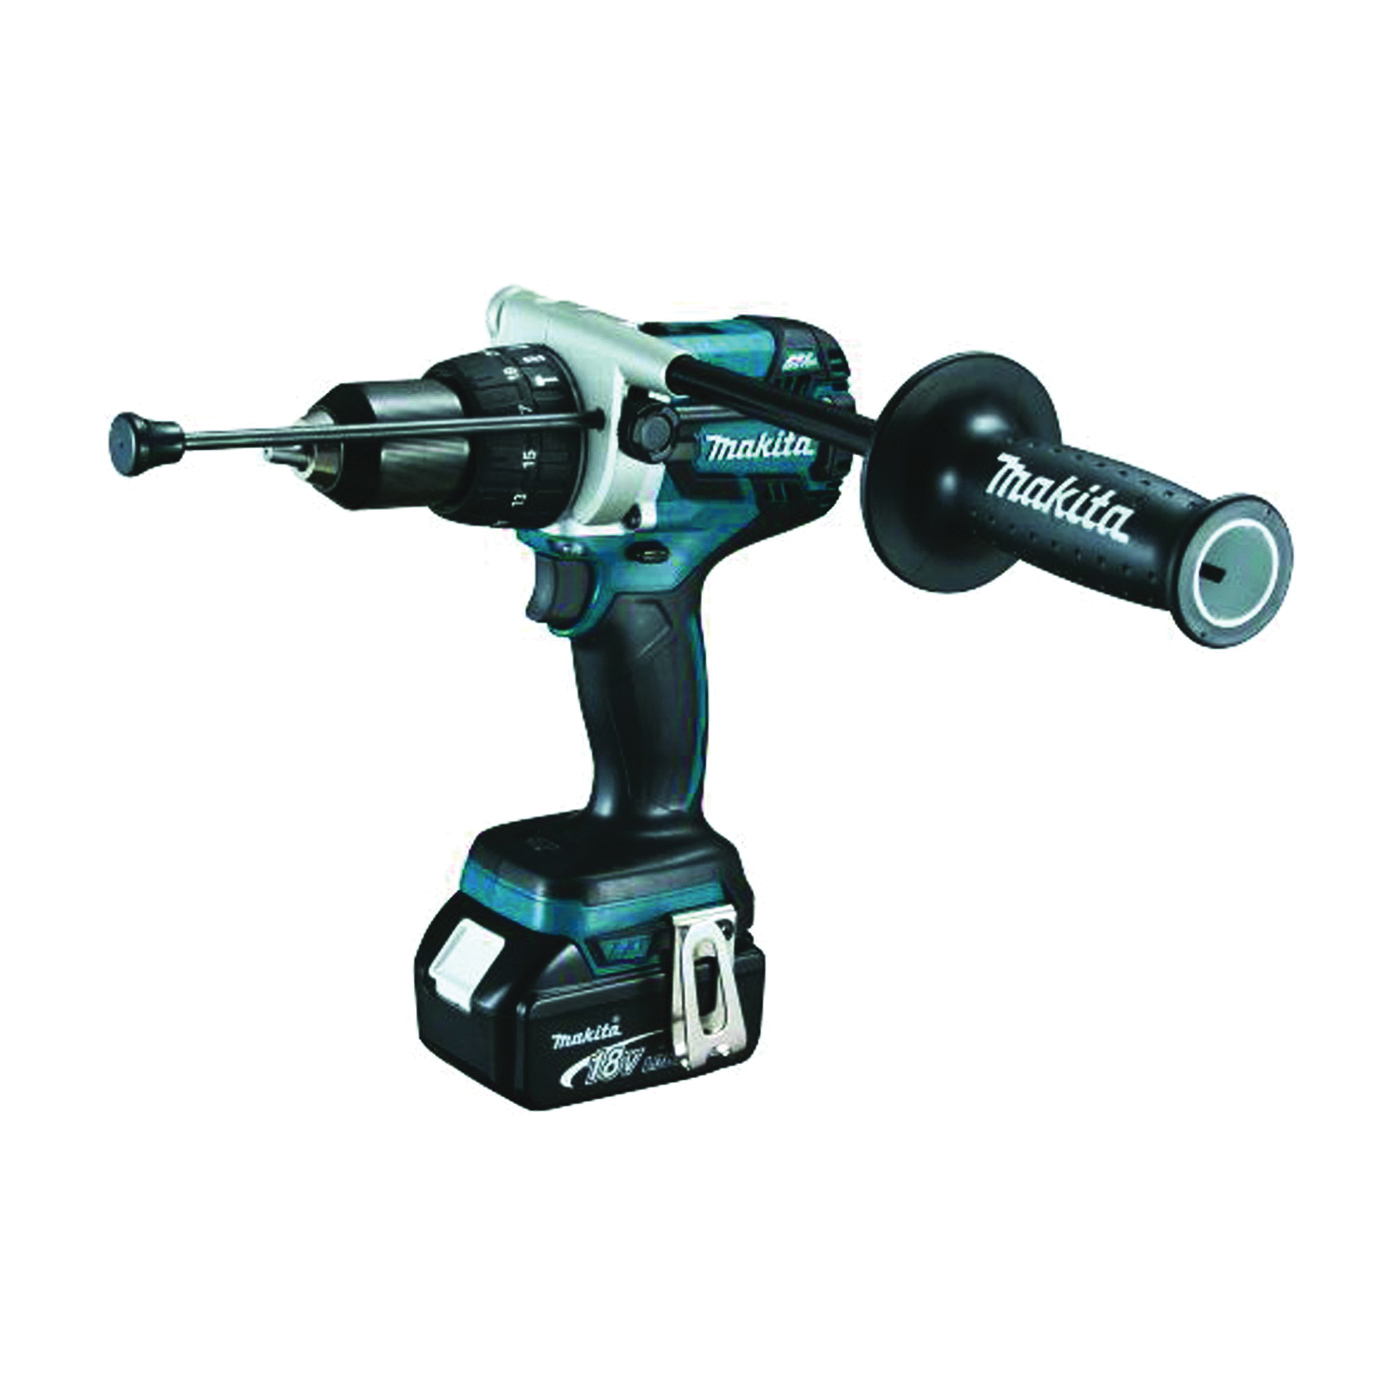 Picture of Makita XPH07MB/XPH07M Hammer Driver-Drill Kit, Kit, 18 V Battery, 4 Ah, 1/2 in Chuck, Keyless Chuck